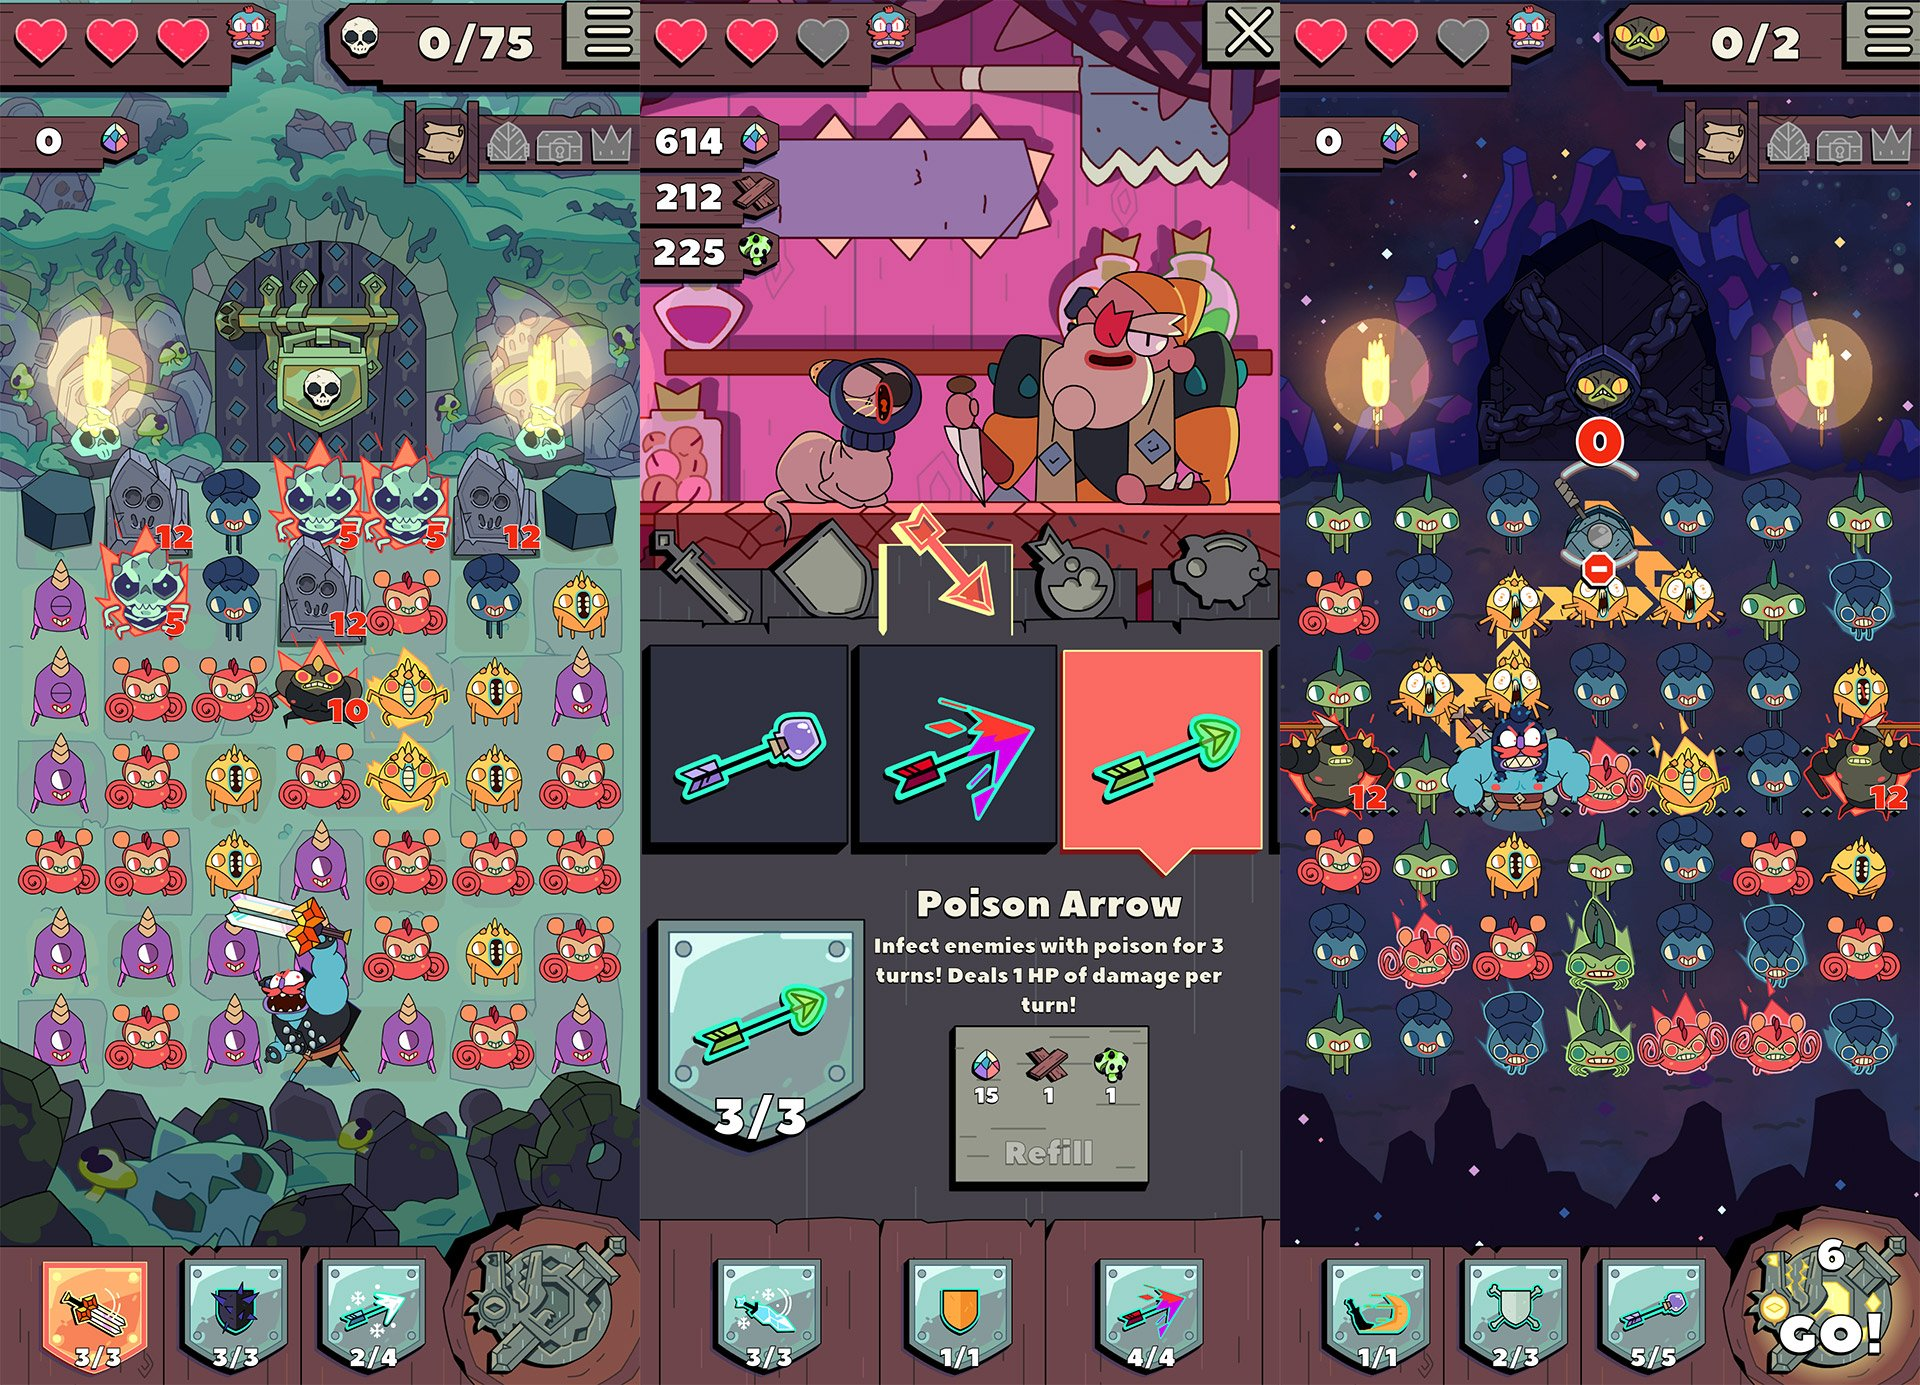 Capybara is back in the puzzle-game business with Grindstone